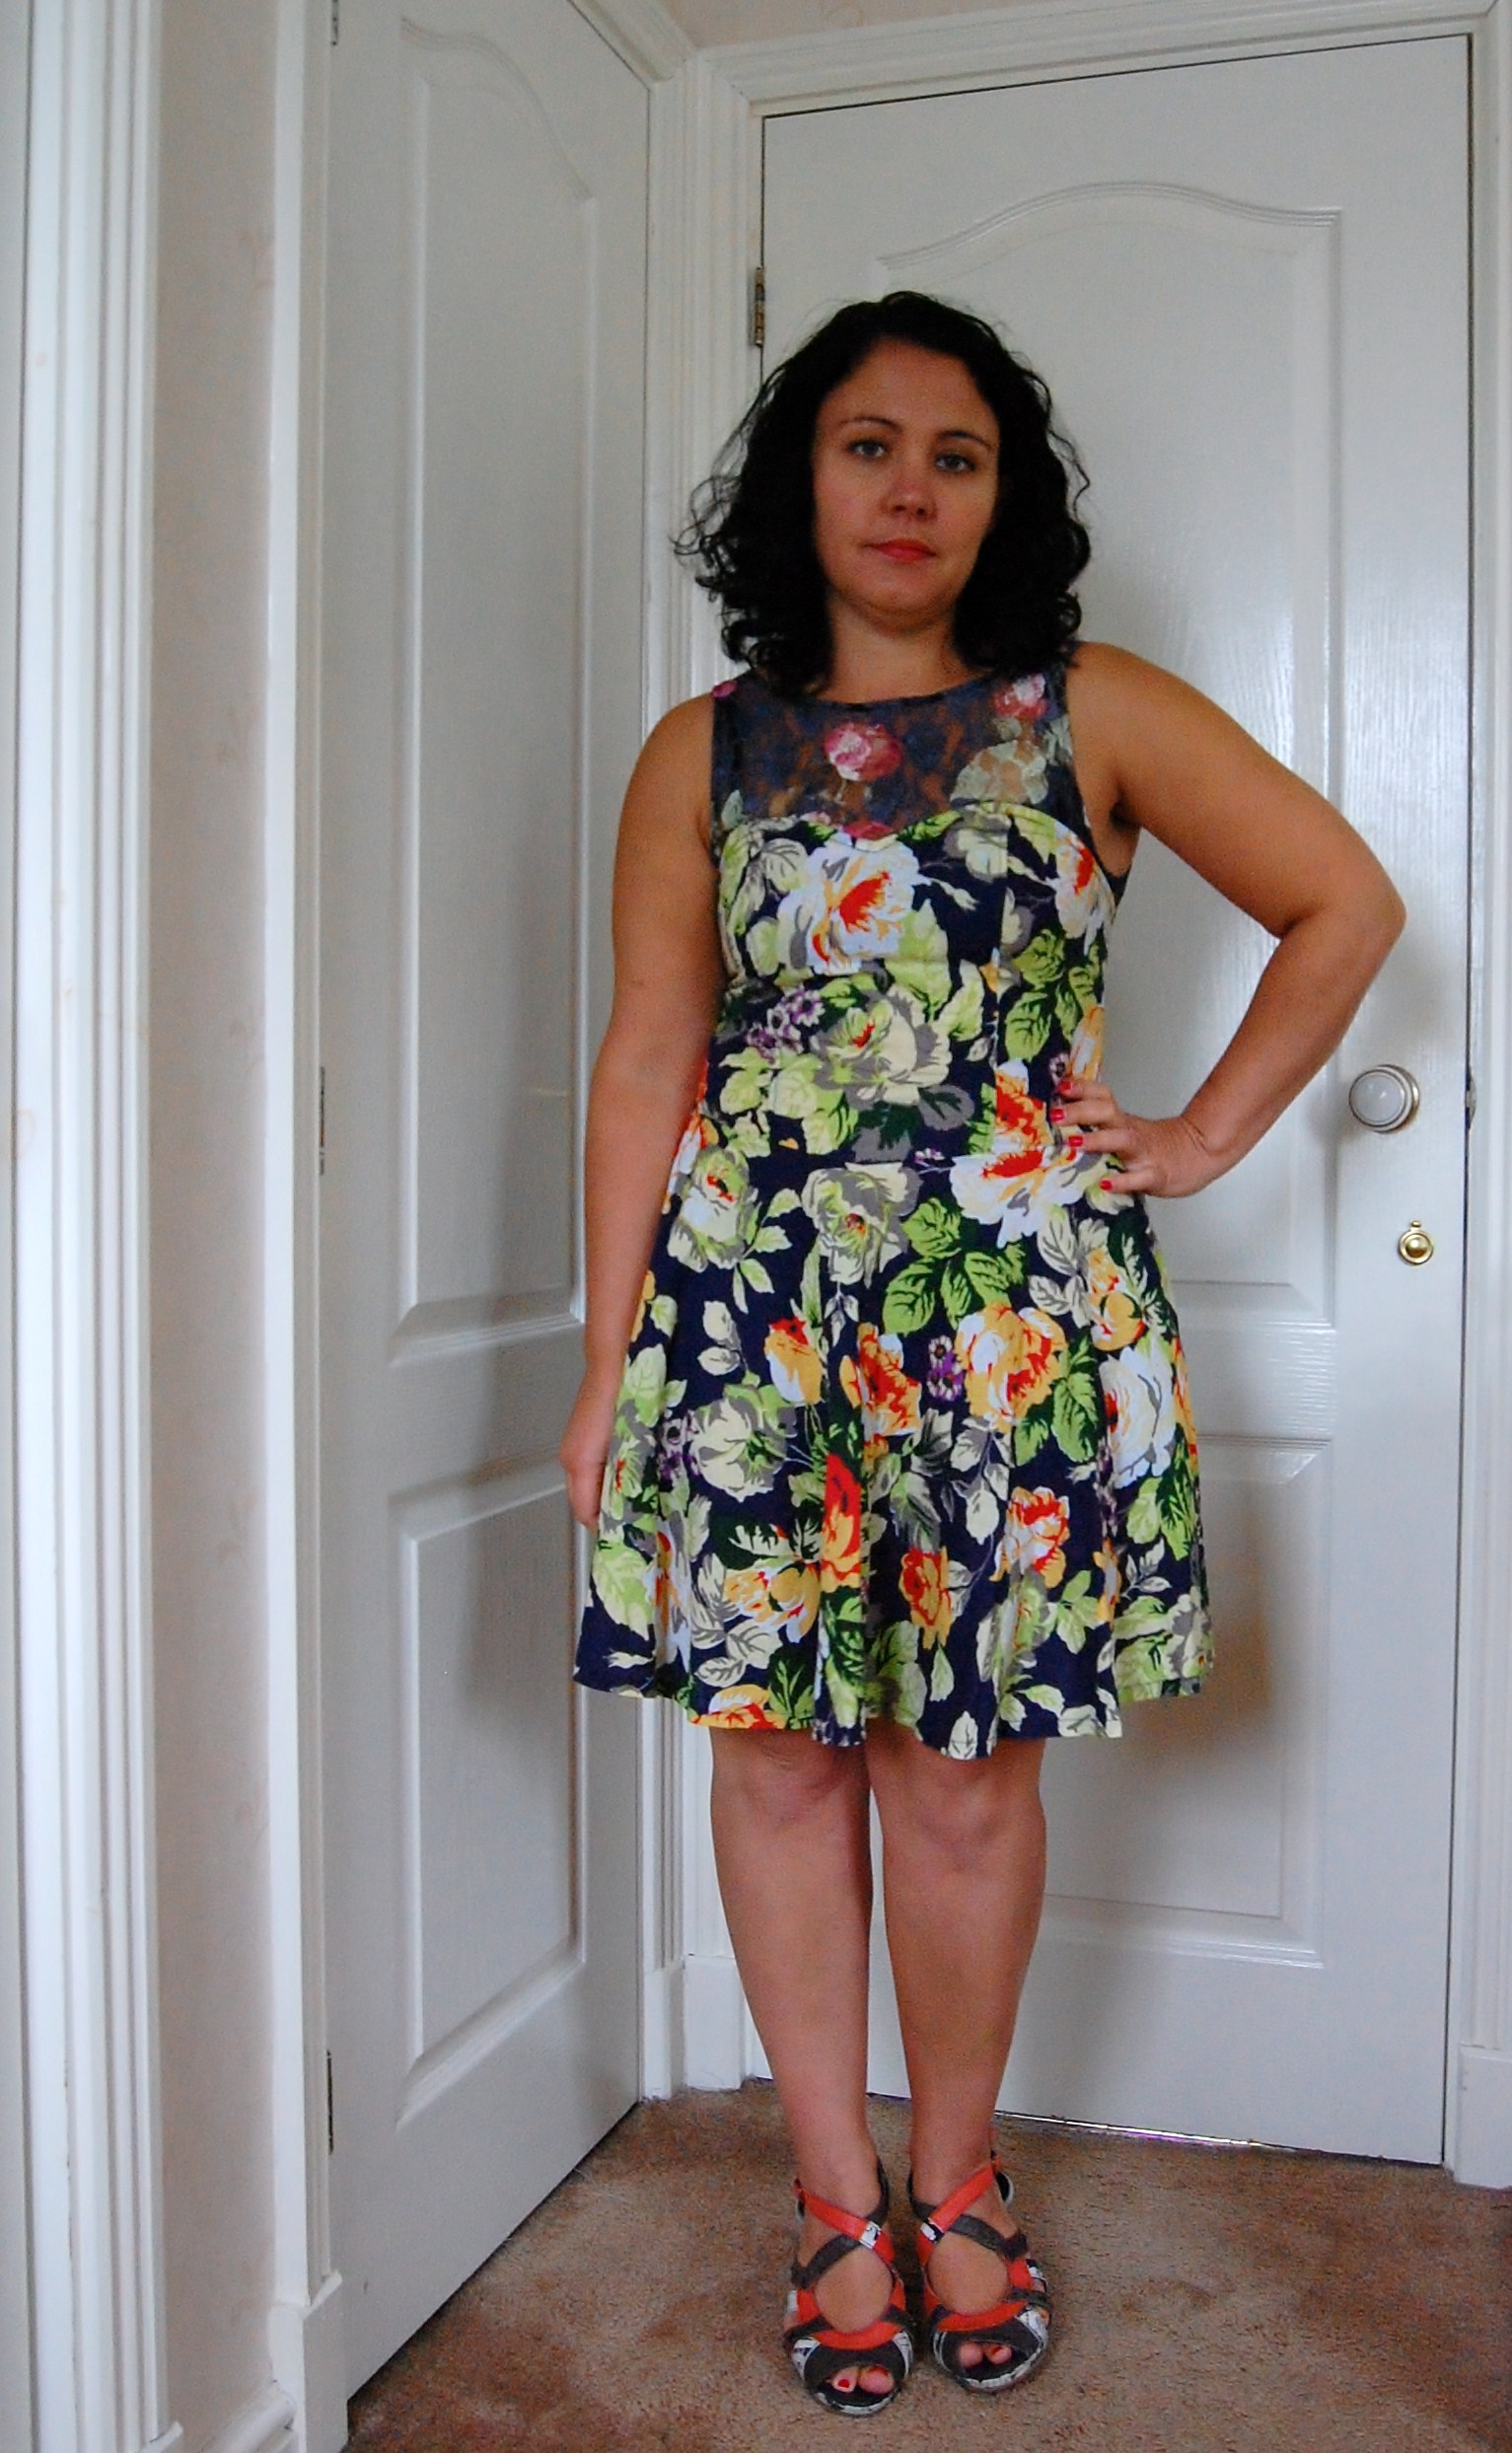 077 An Upcycled Lace and Floral Dress